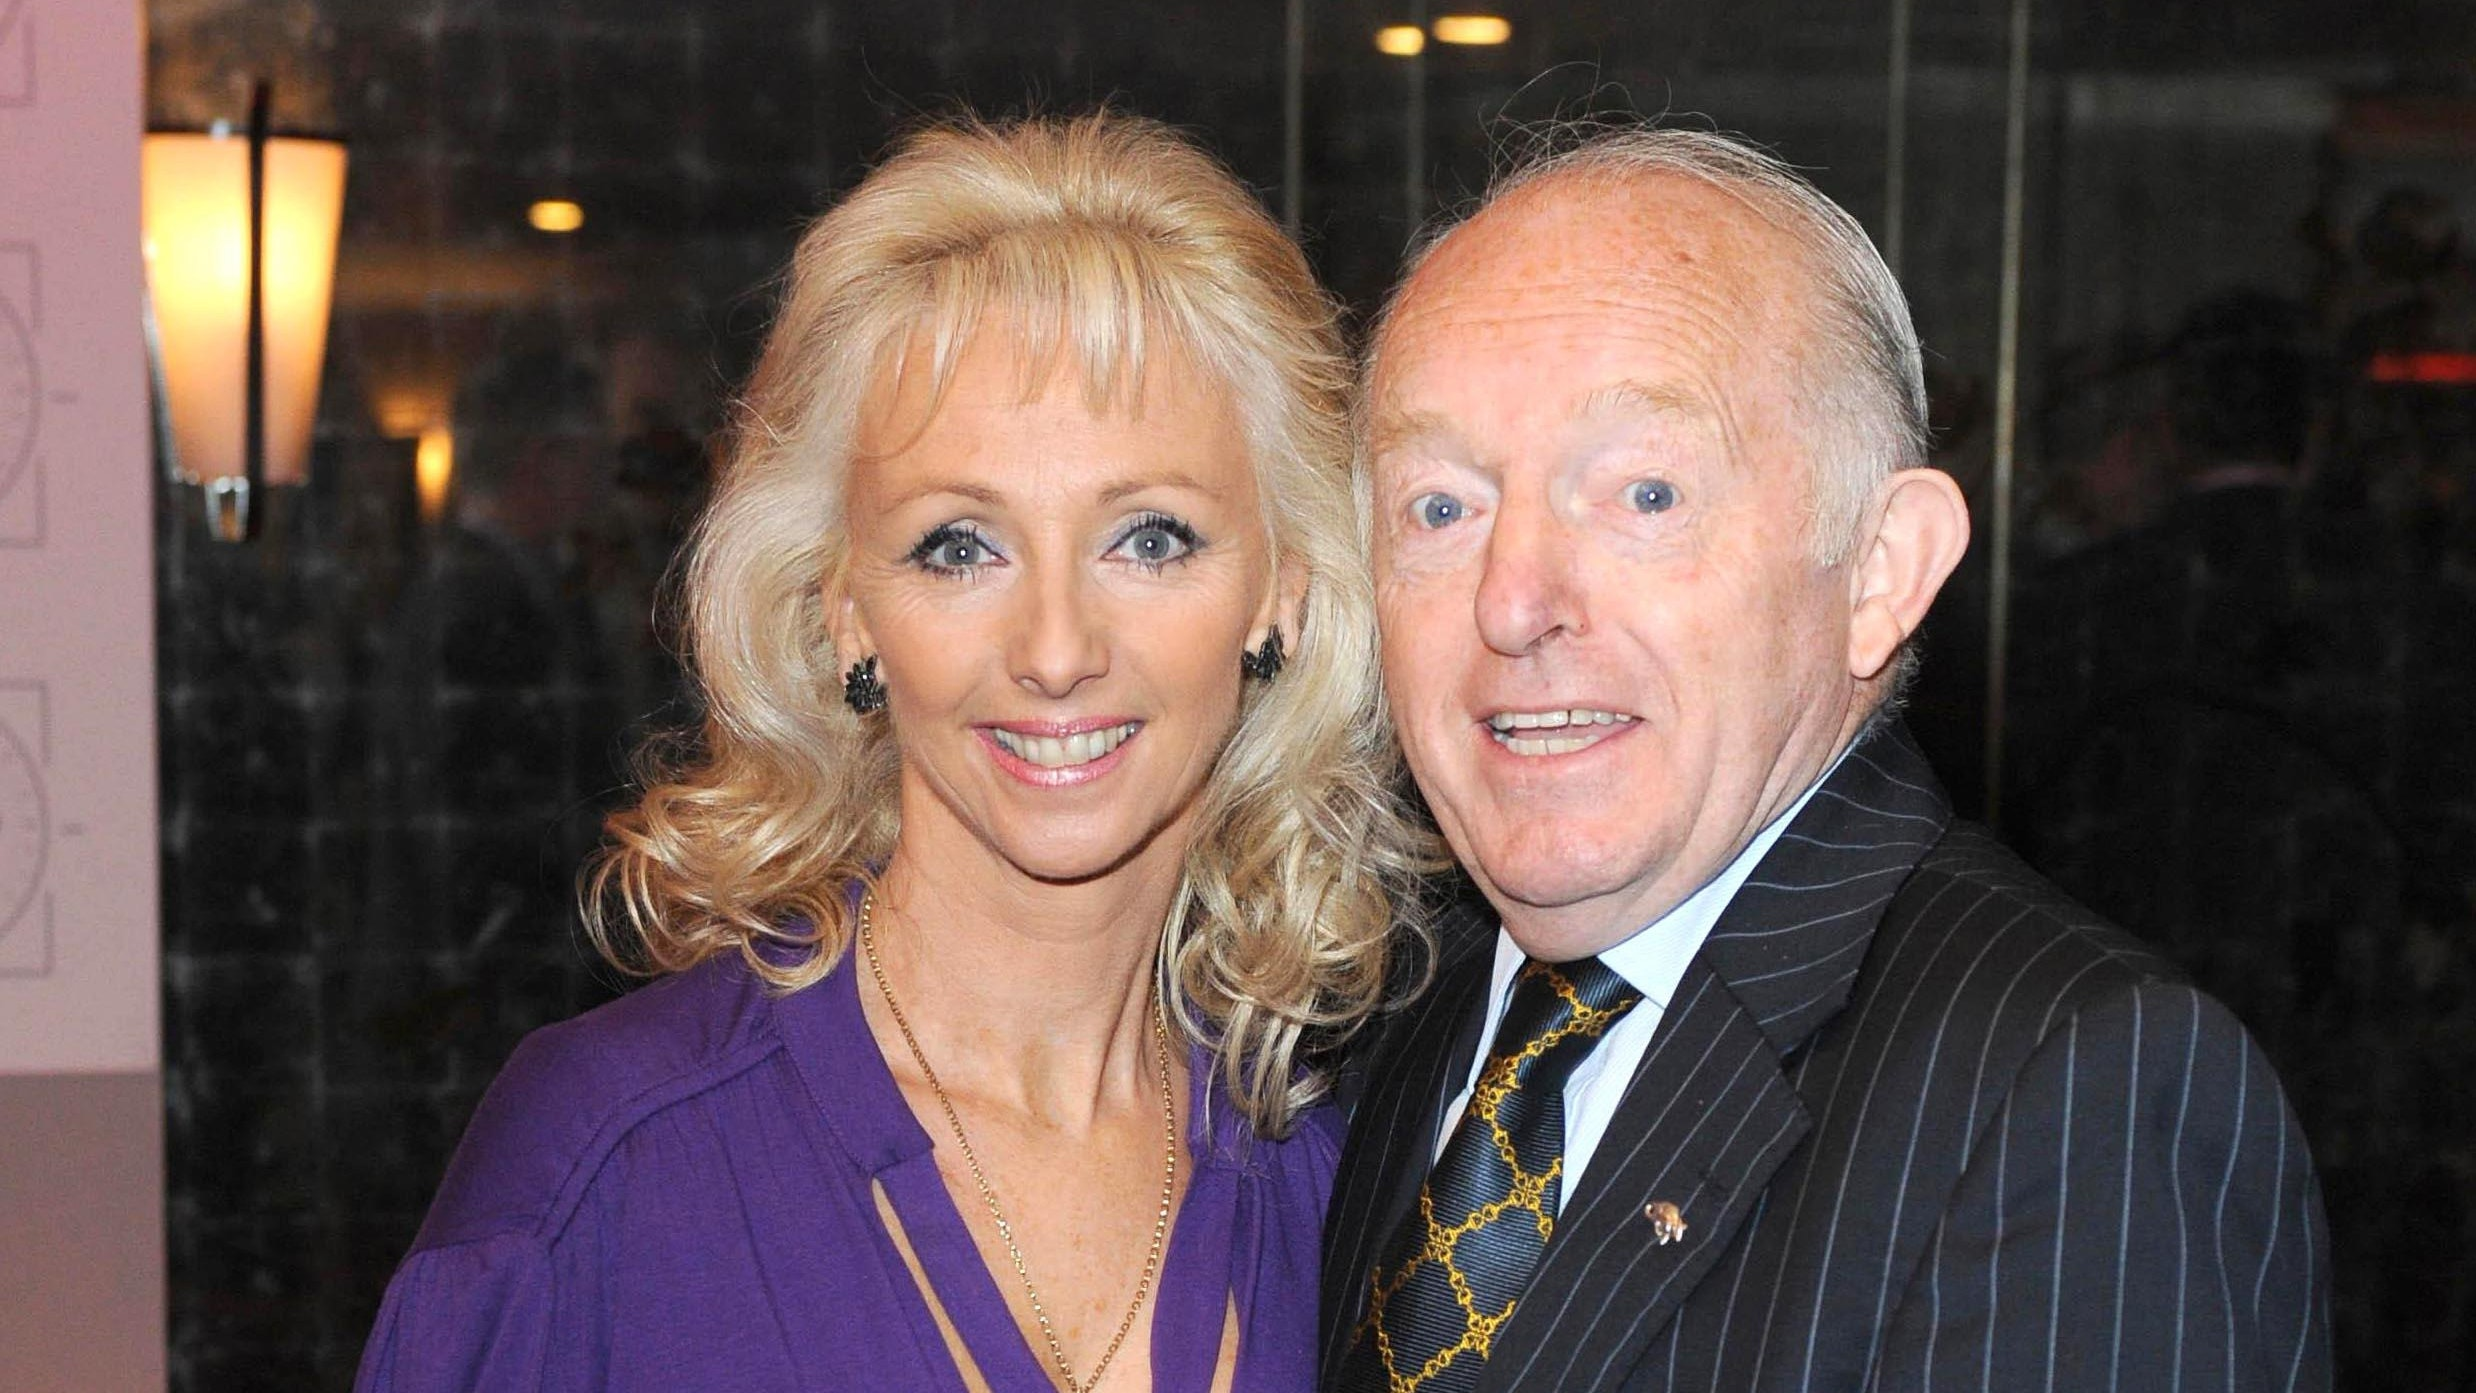 Debbie McGee undergoes breast cancer surgery